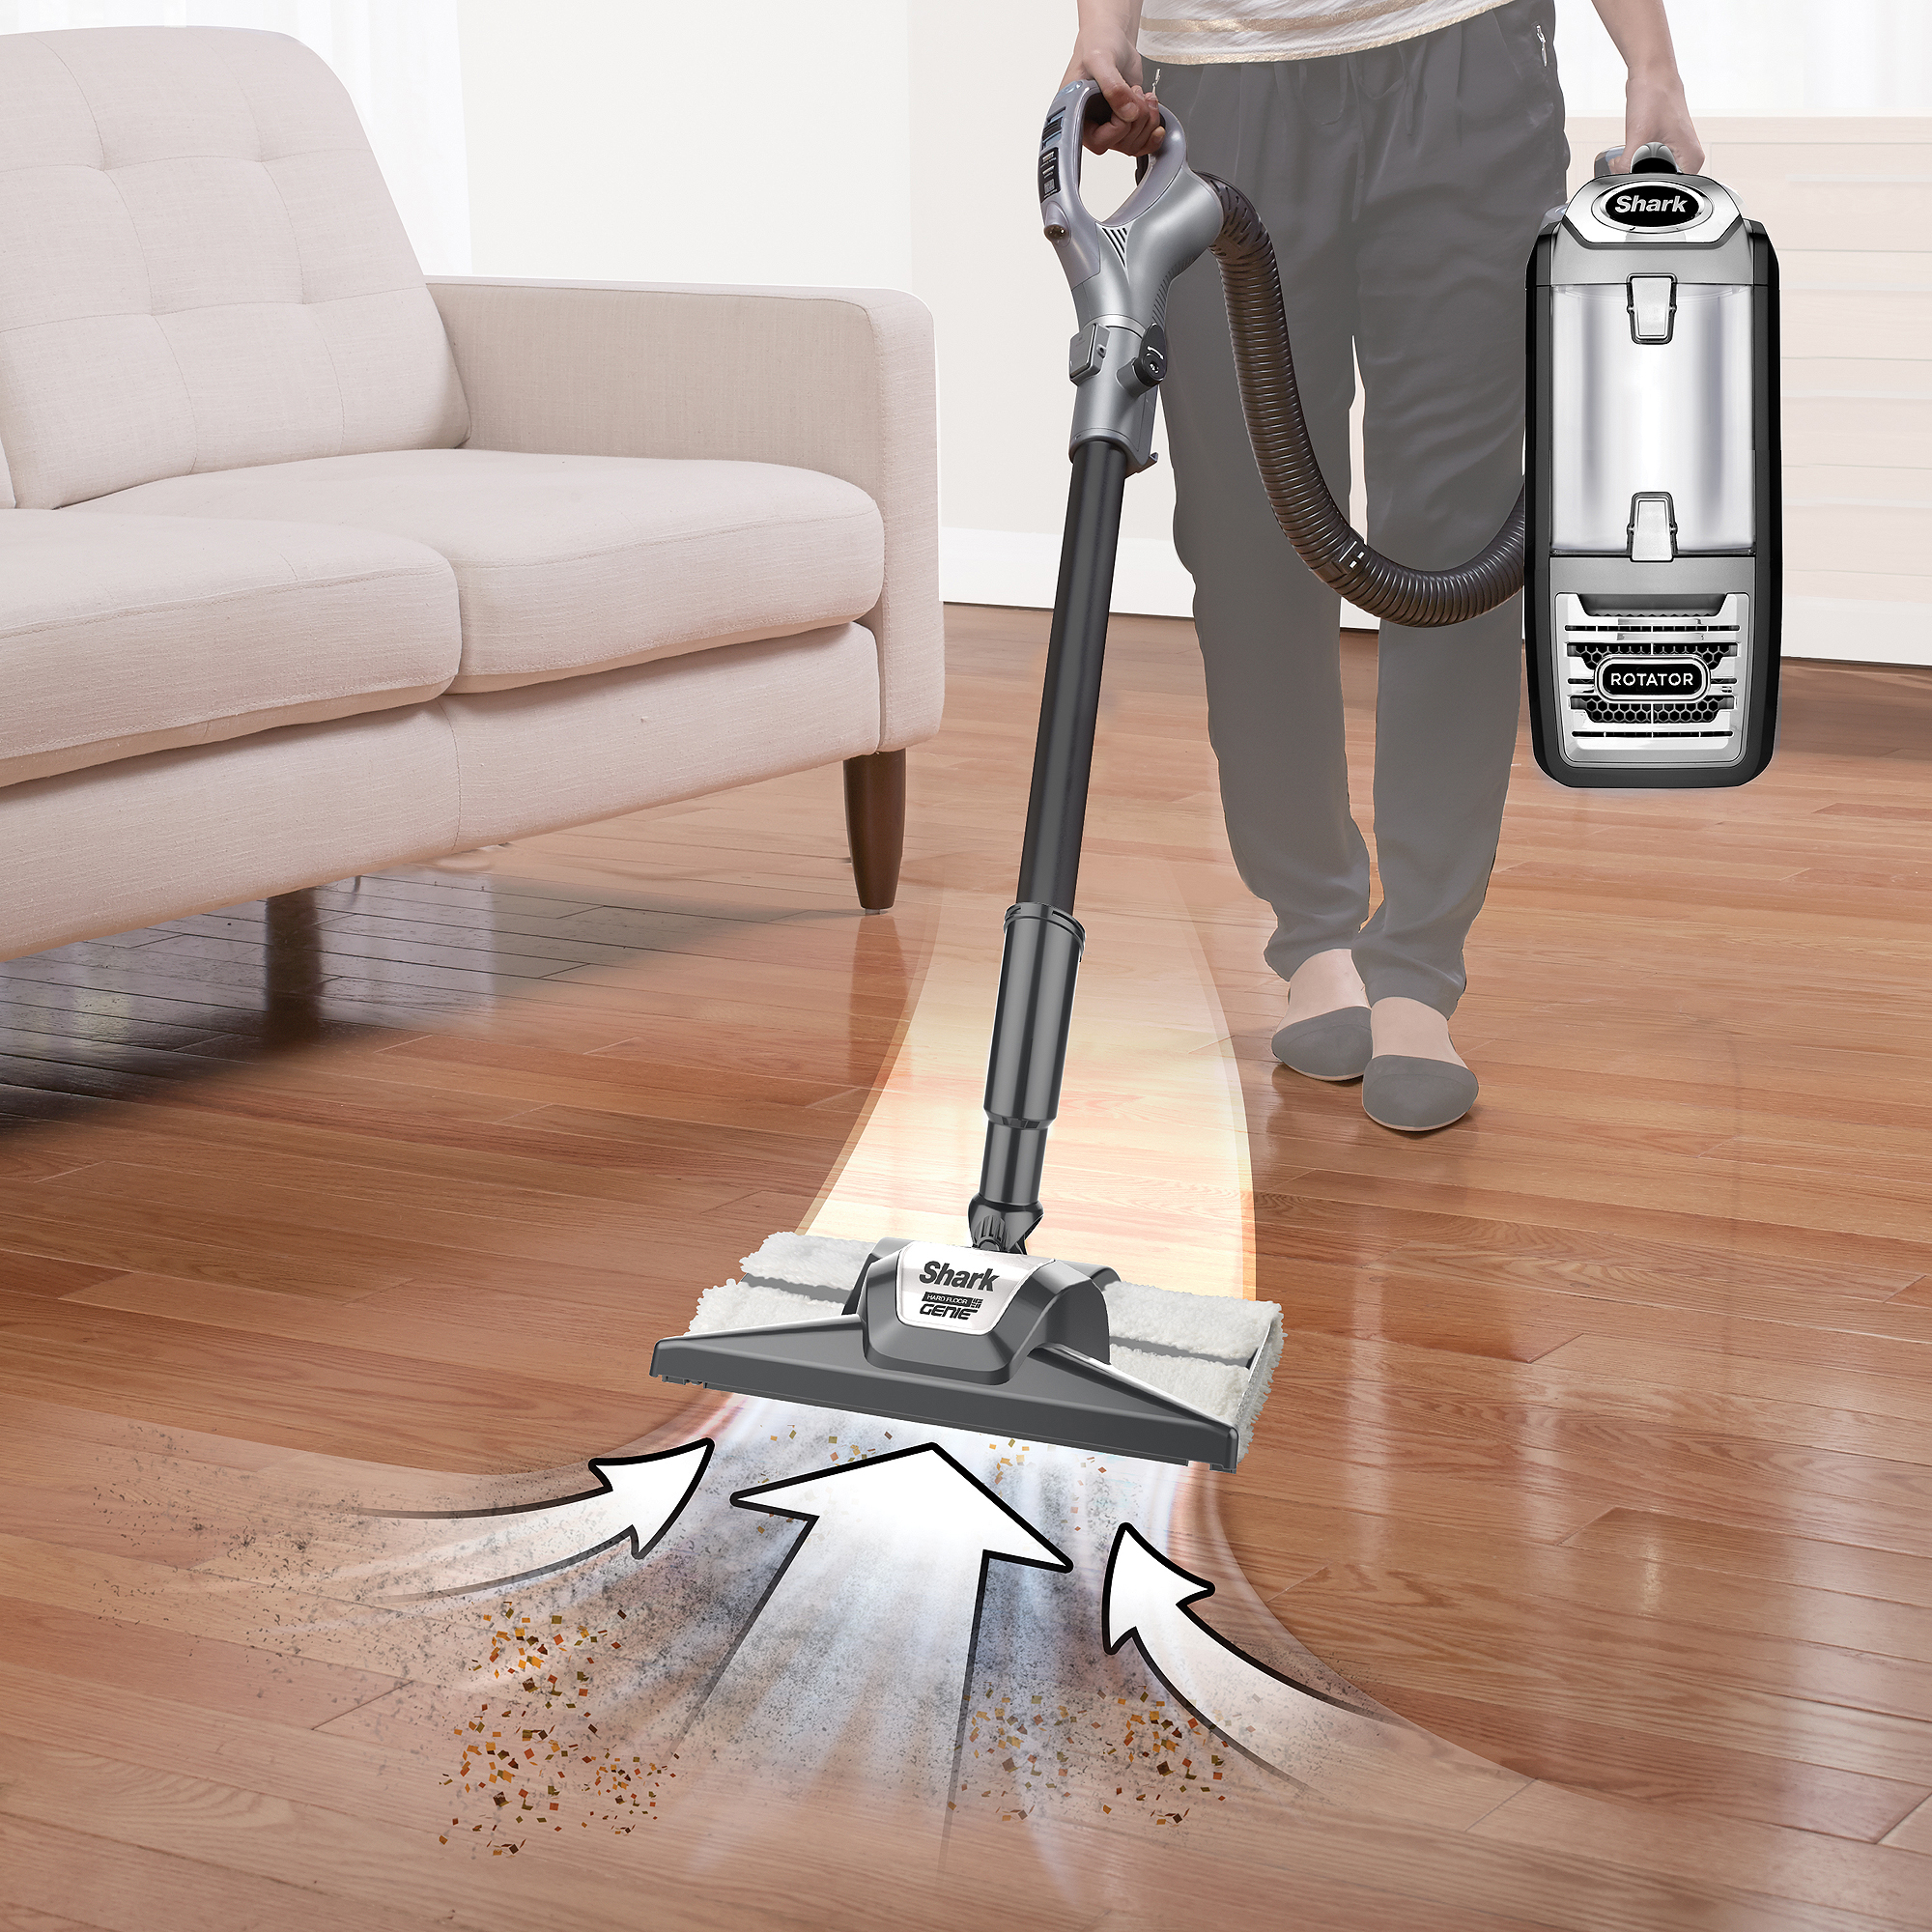 particles the synthetic for and pet cannot on of top so laminate wood floors market dirt types vacuum dust available hair other reviews floor best stubborn allergens like large avoid